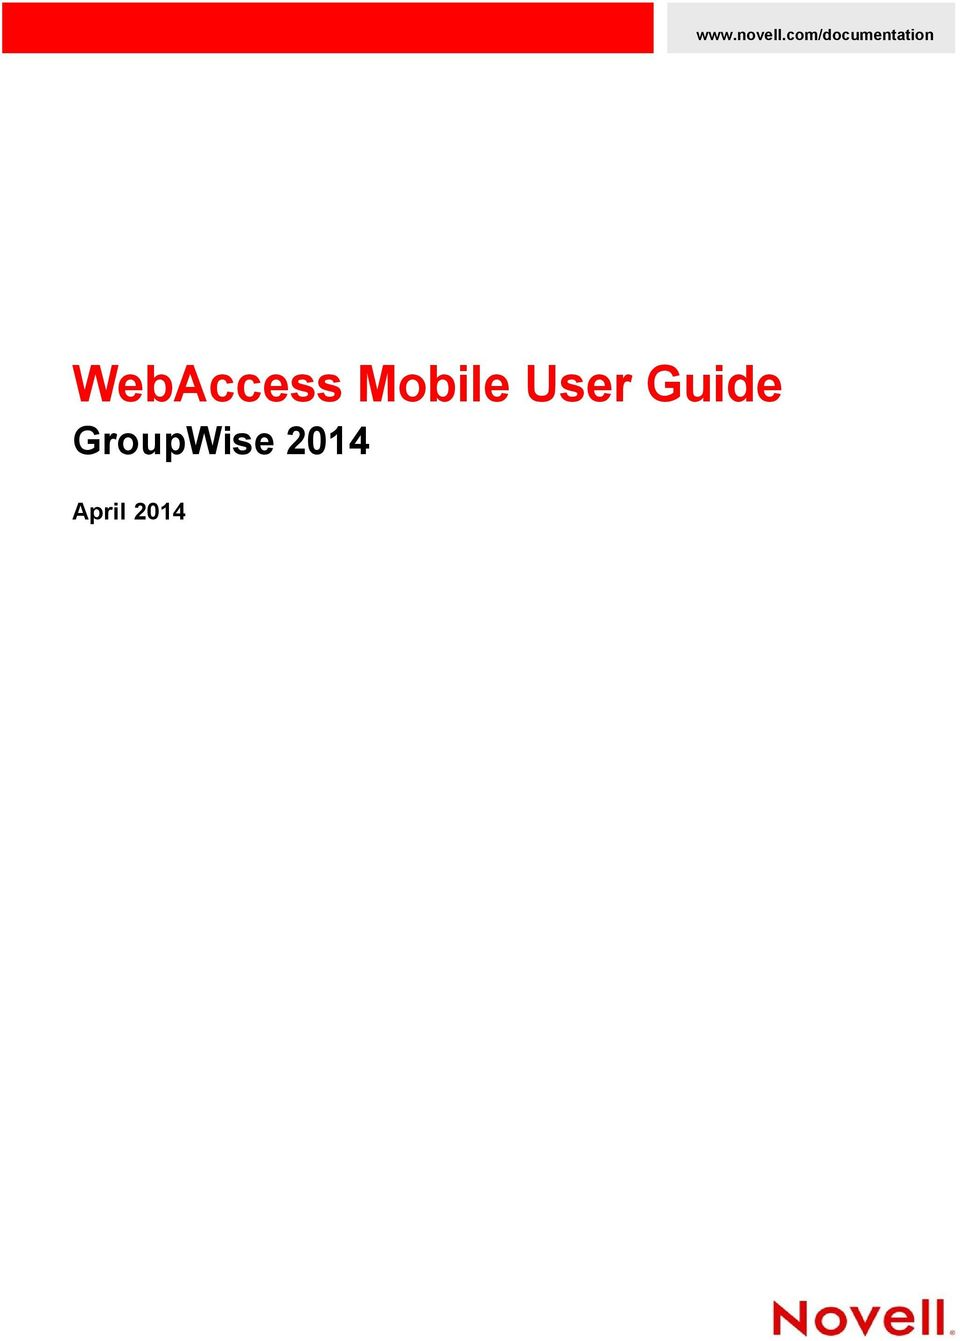 WebAccess Mobile